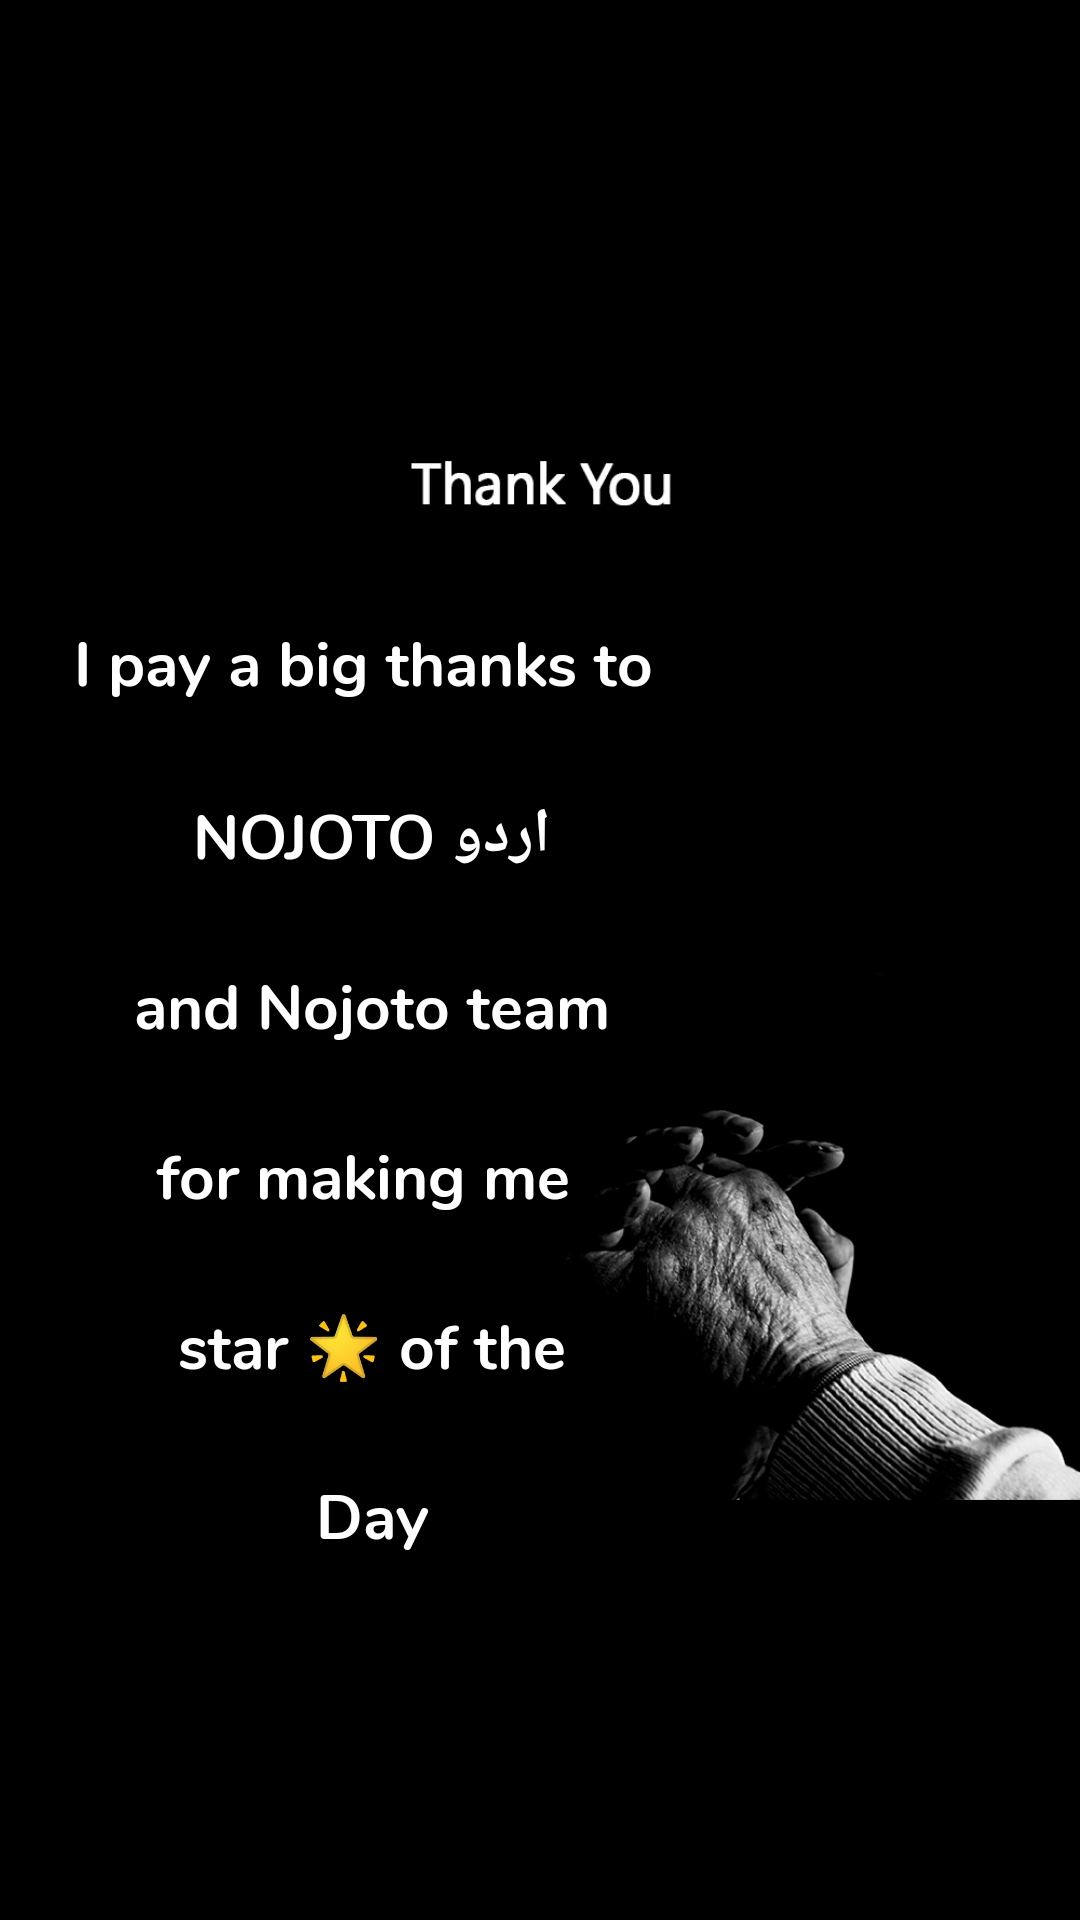 Thank You I pay a big thanks to   NOJOTO اردو  and Nojoto team  for making me   star 🌟 of the  Day